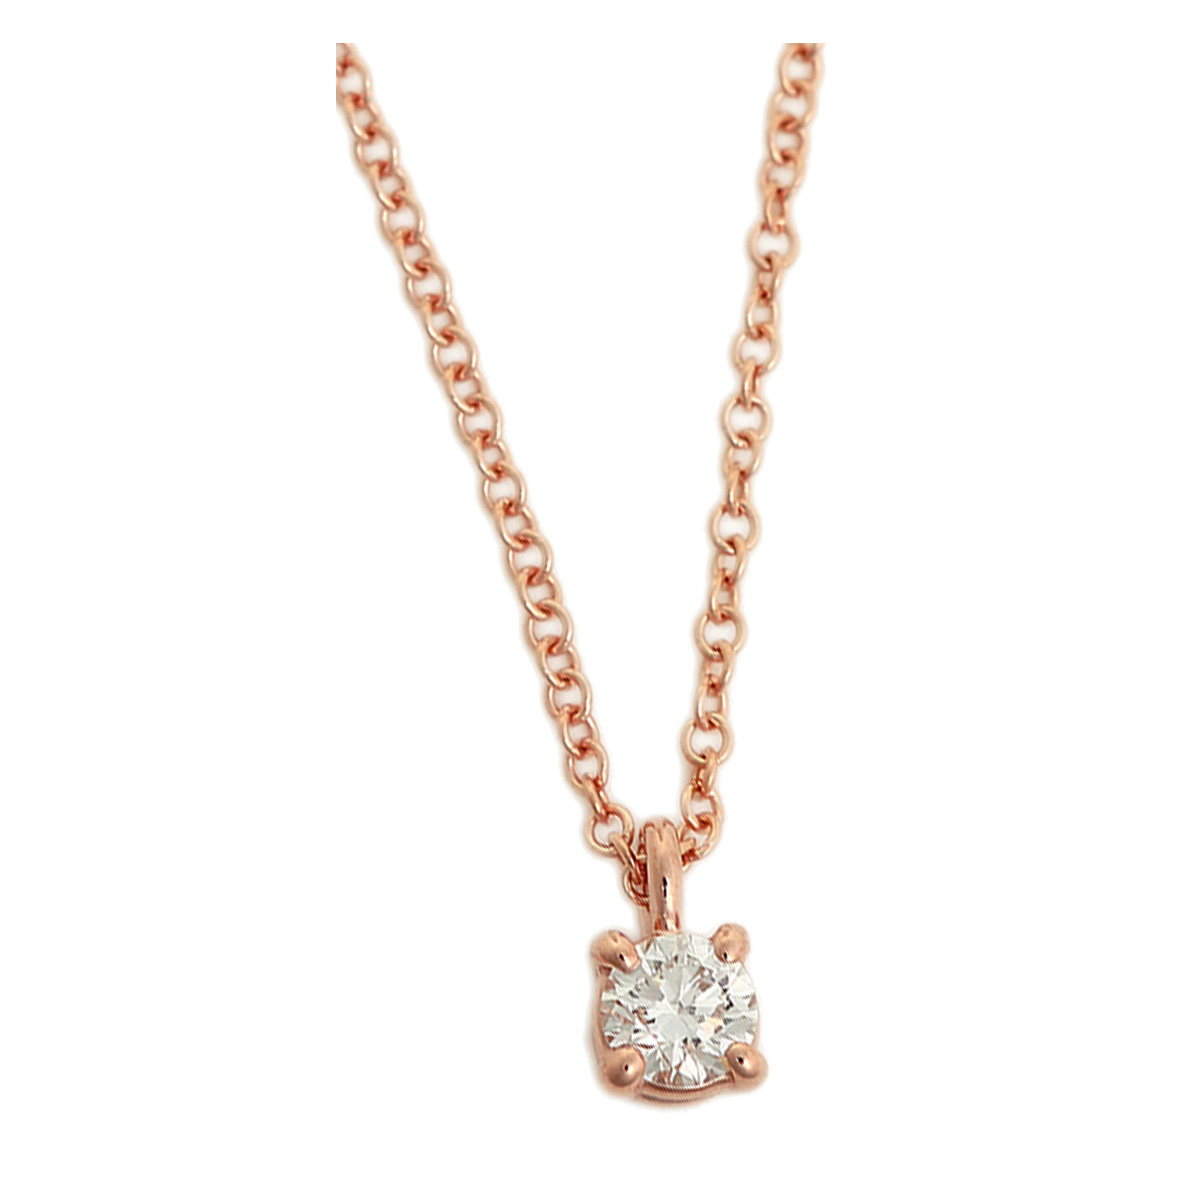 Salada bowl rakuten global market tiffany necklace single diamond tiffany necklace single diamond tiffany co solitaire diamond pendant12ct 16 in 18r 30420837 rose gold diamond aloadofball Images